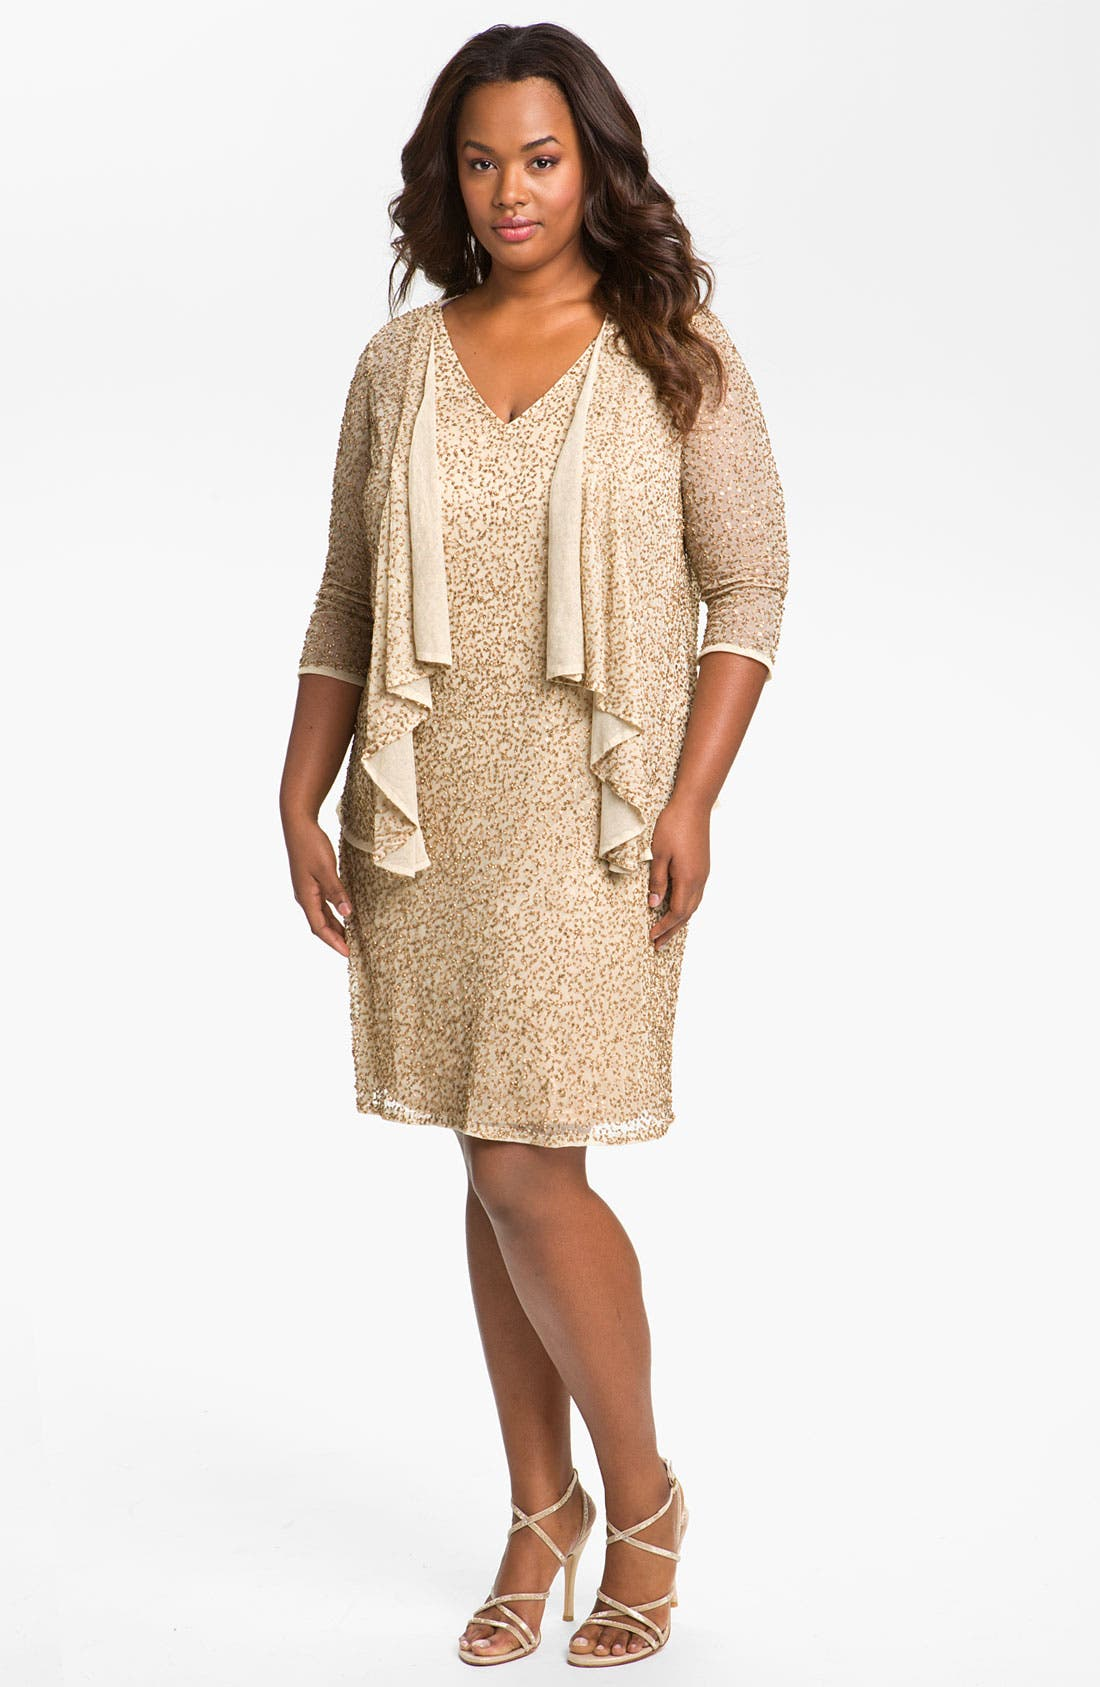 Alternate Image 1 Selected - JS Collections Beaded Sheath Dress & Jacket (Plus)